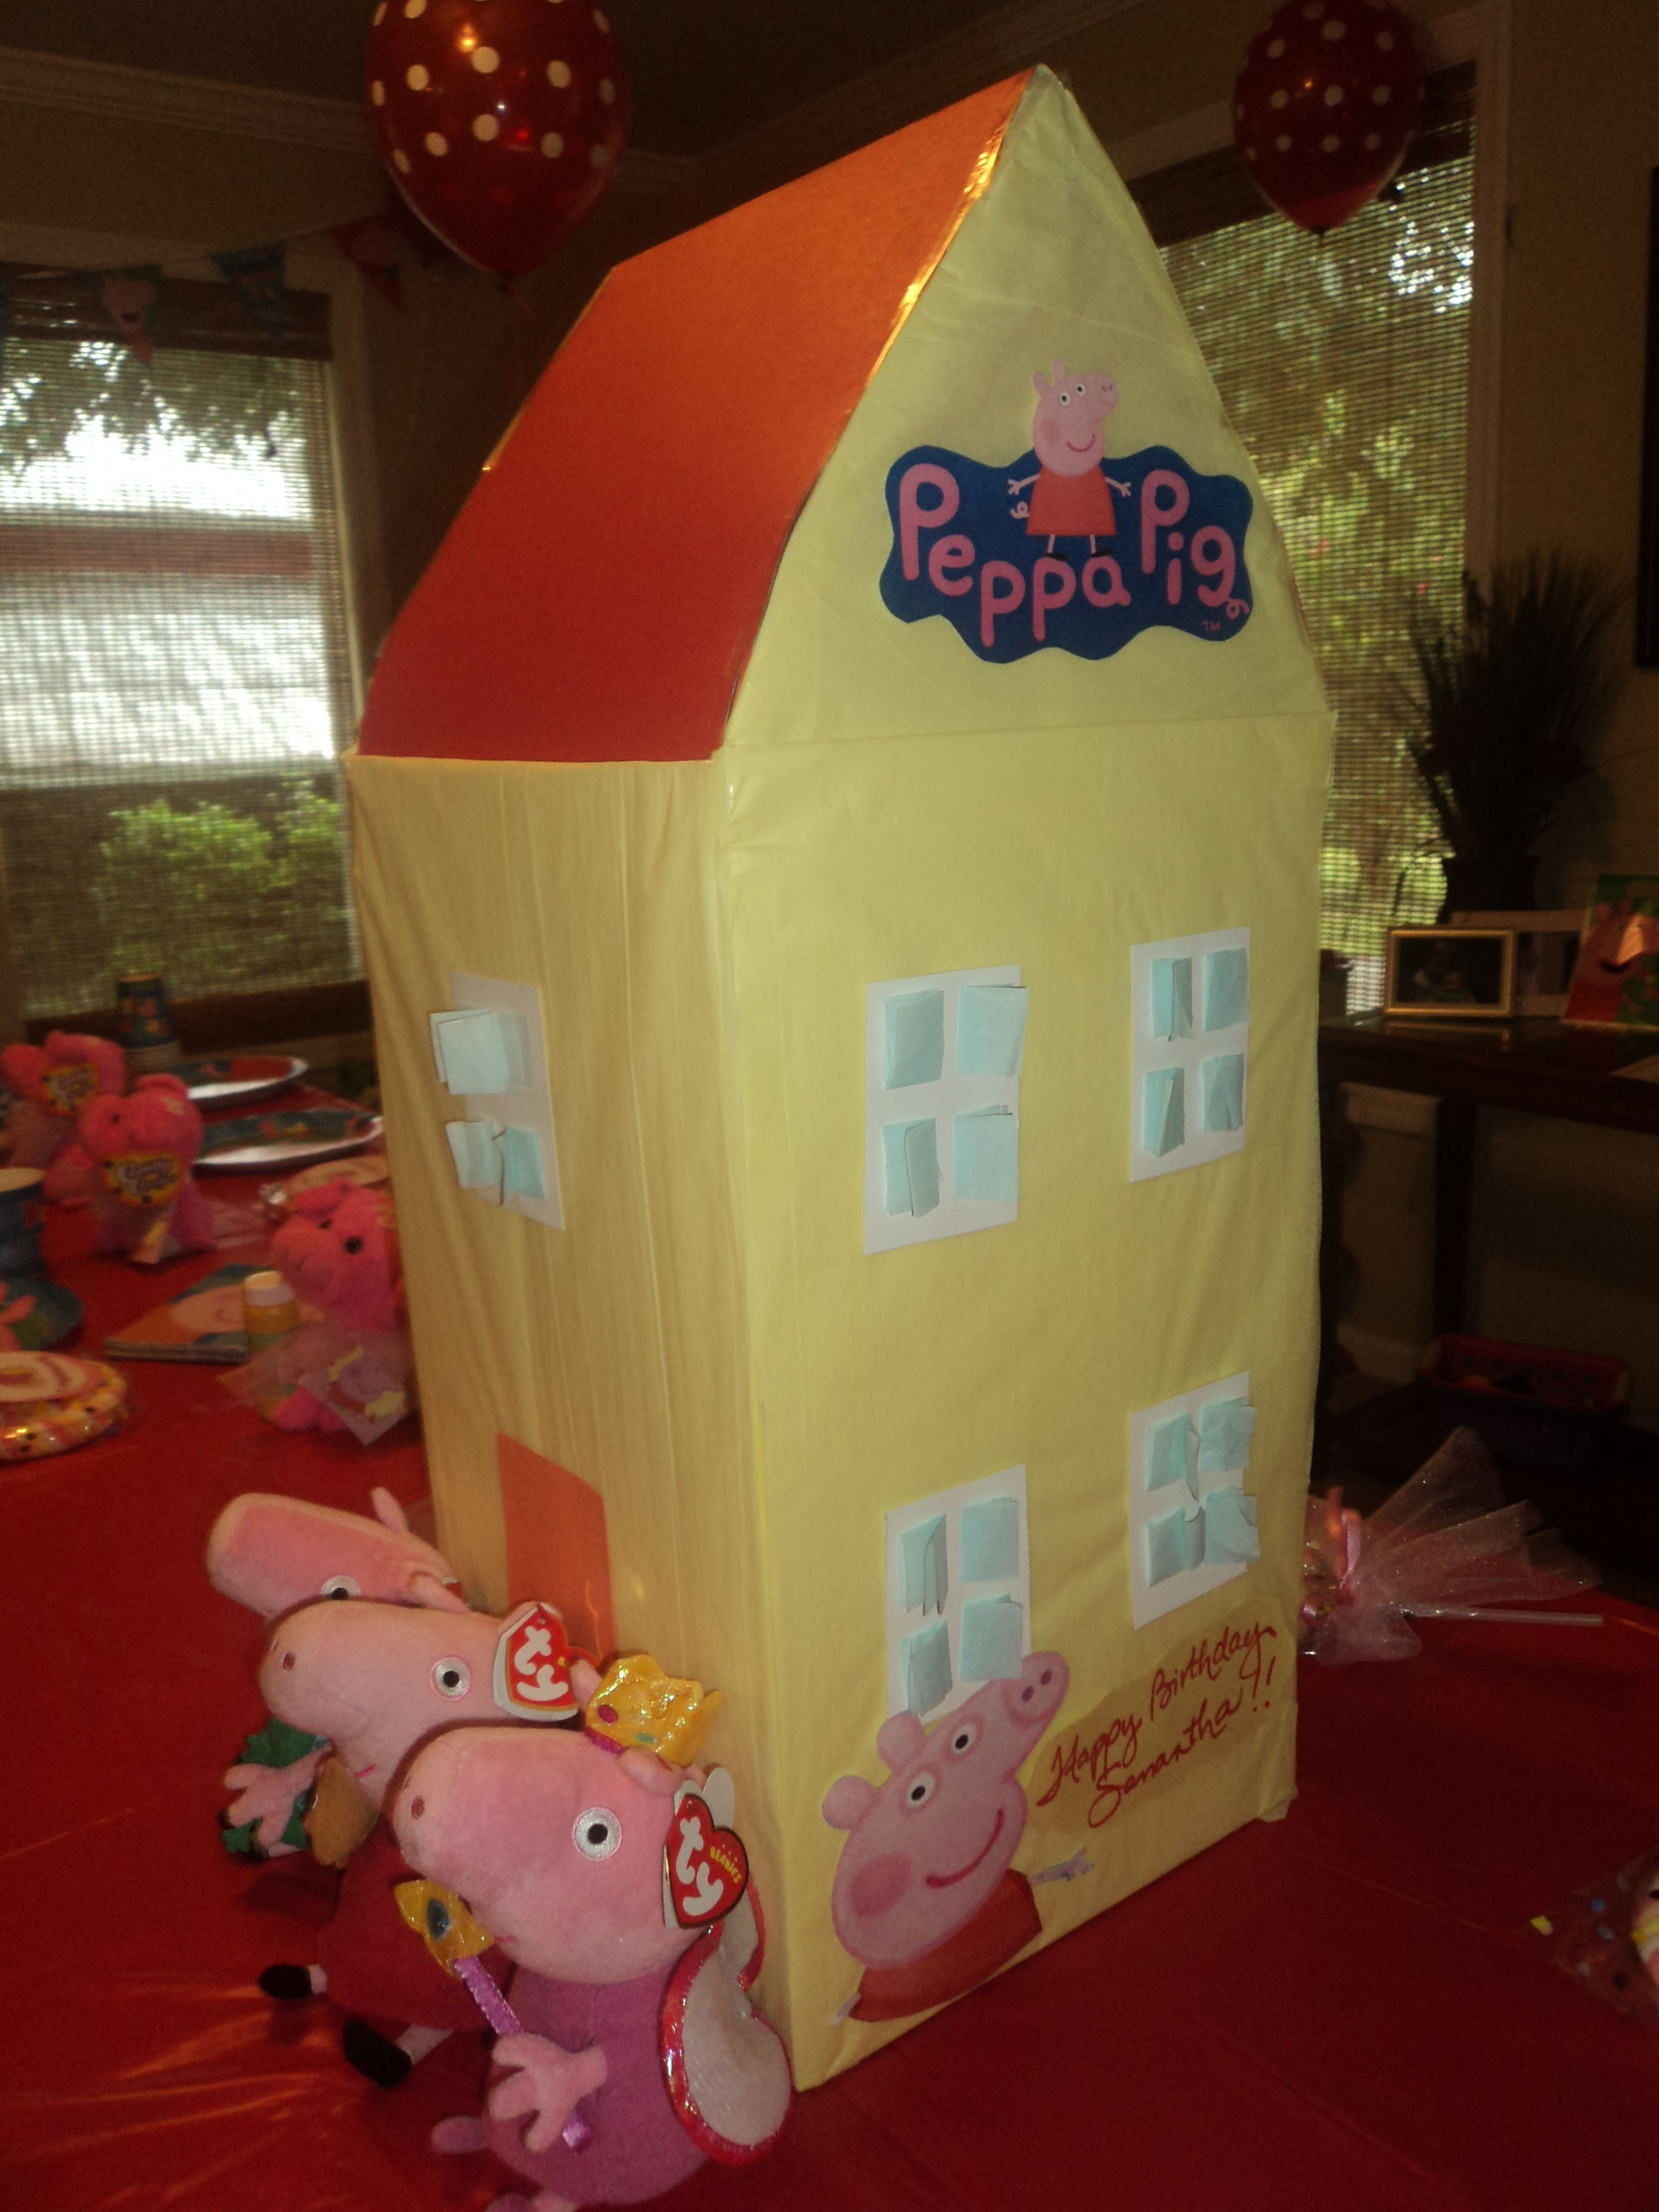 peppa house made out of cardboard box, some cardboard paper and tissue paper. cutouts to complete it and personalize it.